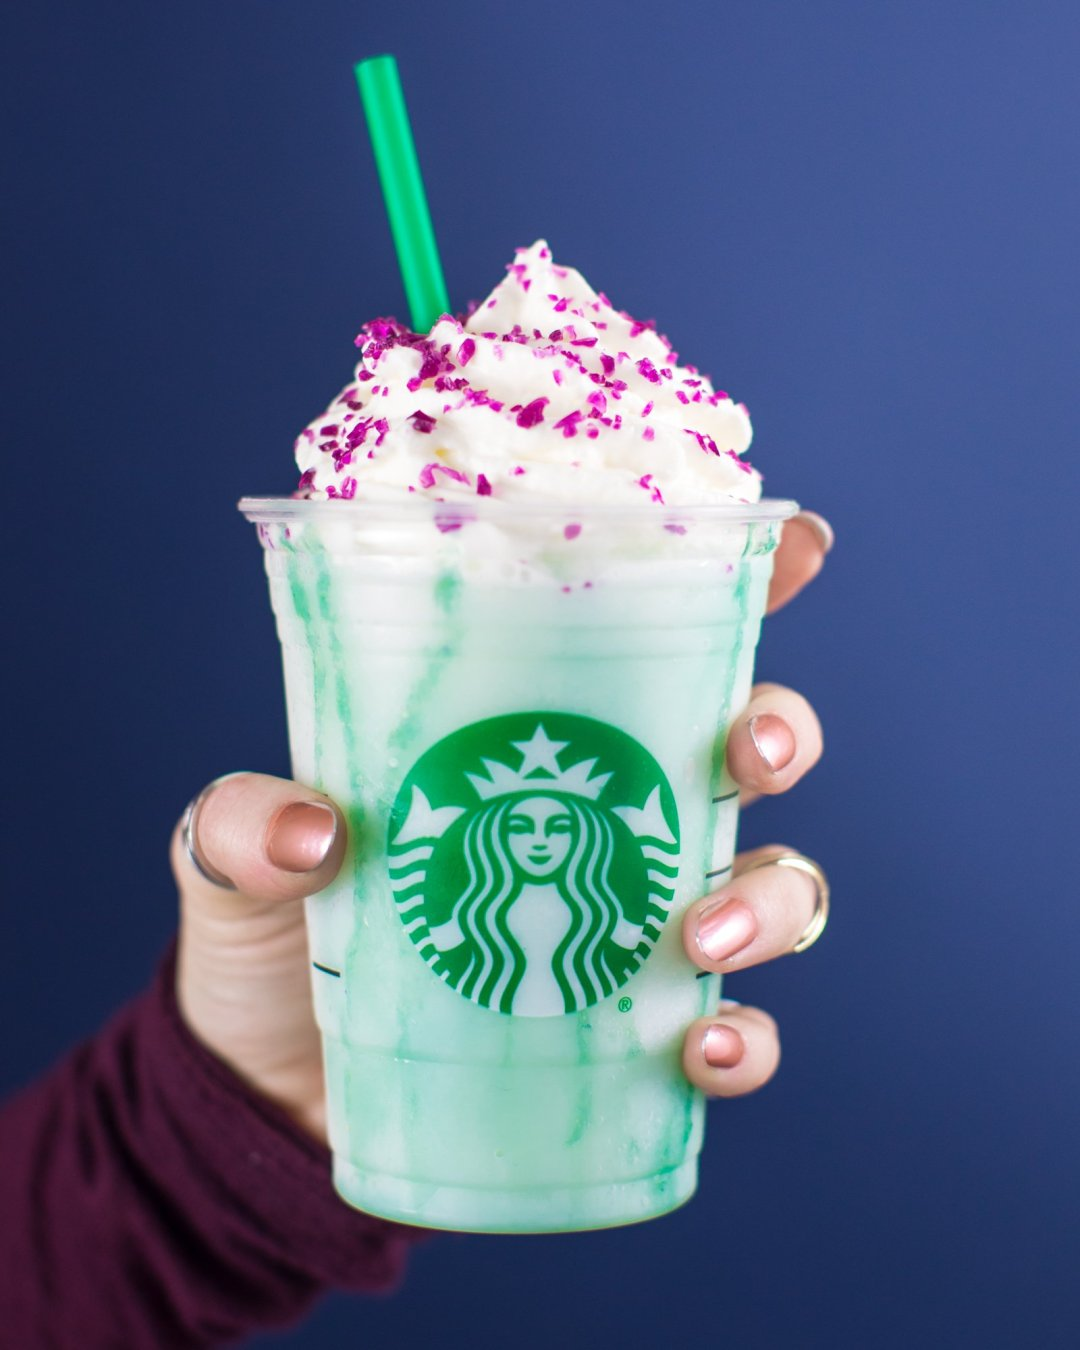 tmp_GPxat0_6ad3a2b6ab961103_Starbucks_Crystal_Ball_Frappuccino_purple_hi_res